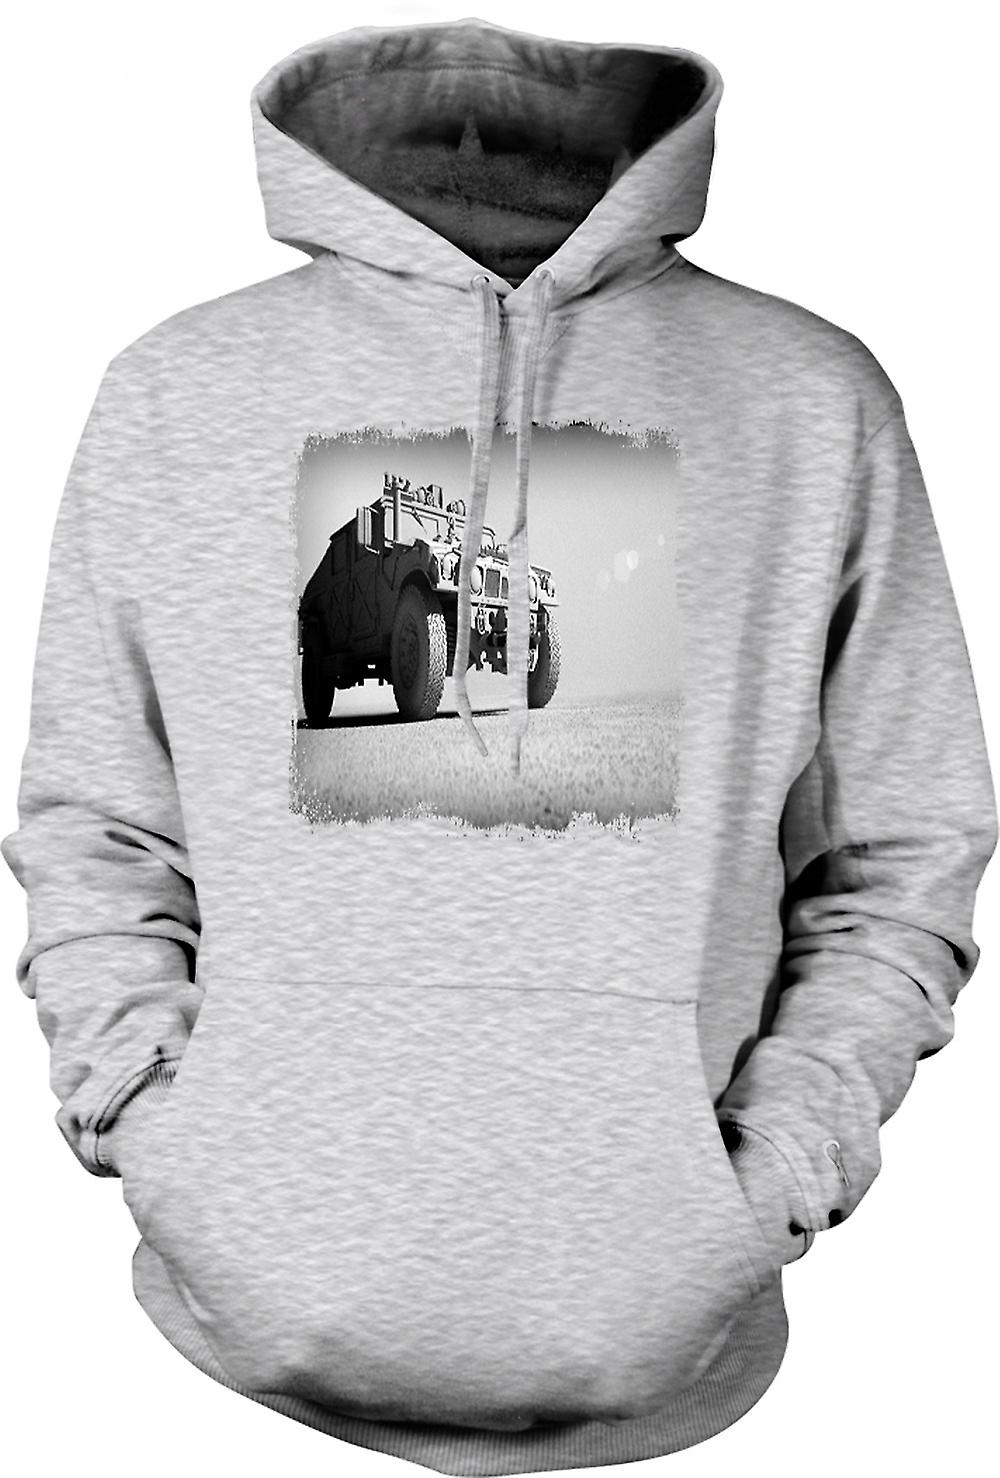 Mens-Hoodie - US Army Humvee - Desert Warrior